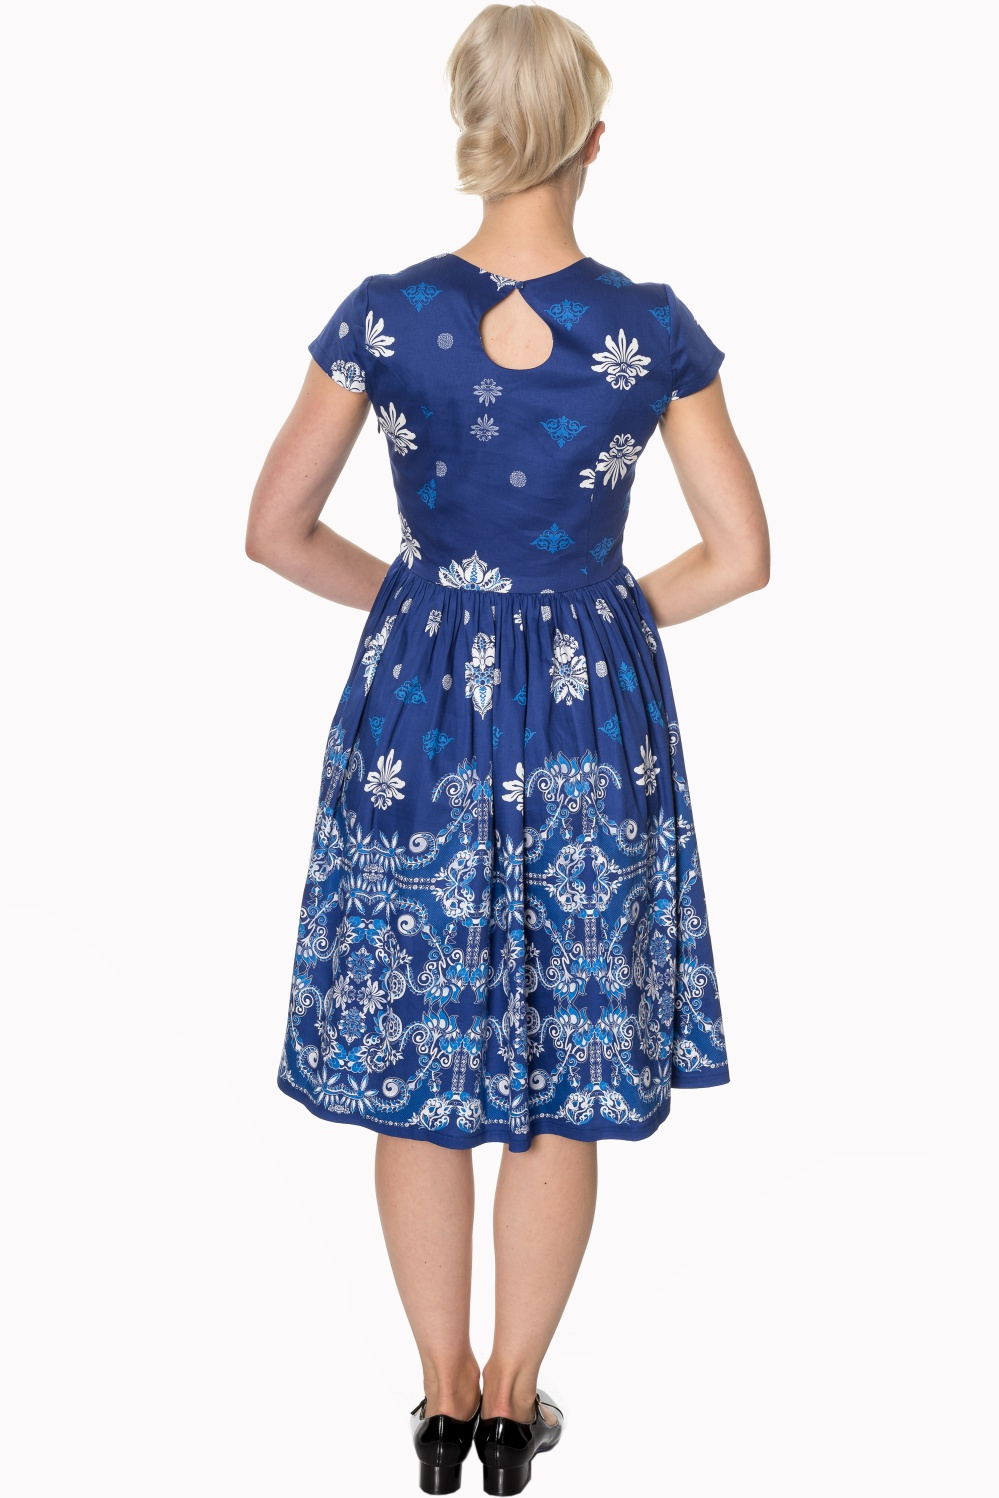 Dancing Days Follow You Blue 1950s Swing Dress